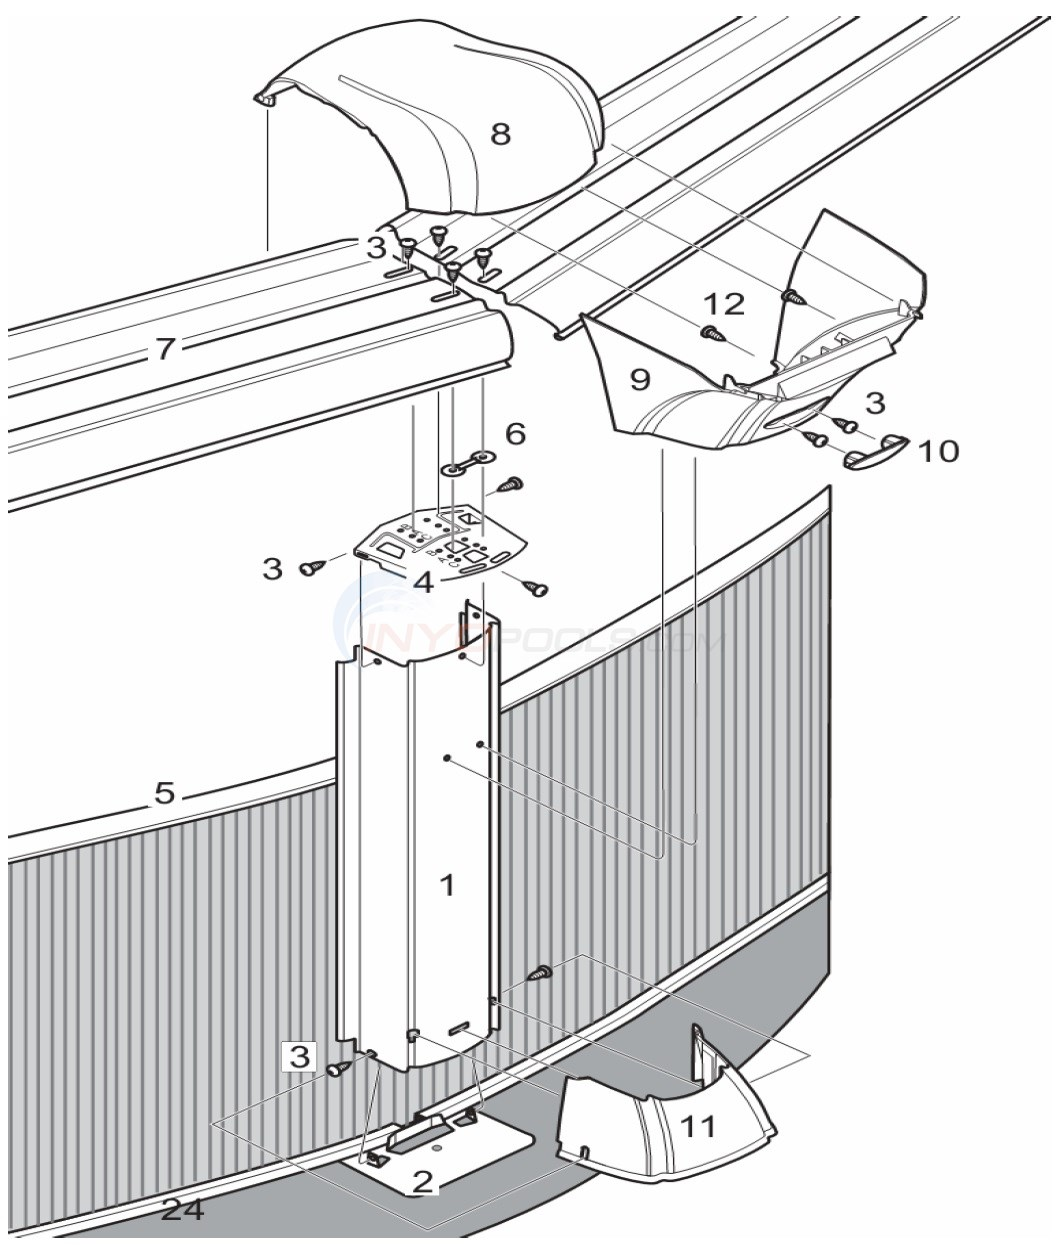 "Belize 27' Round 52"" Wall (Steel Top Rail, Steel Upright) Diagram"